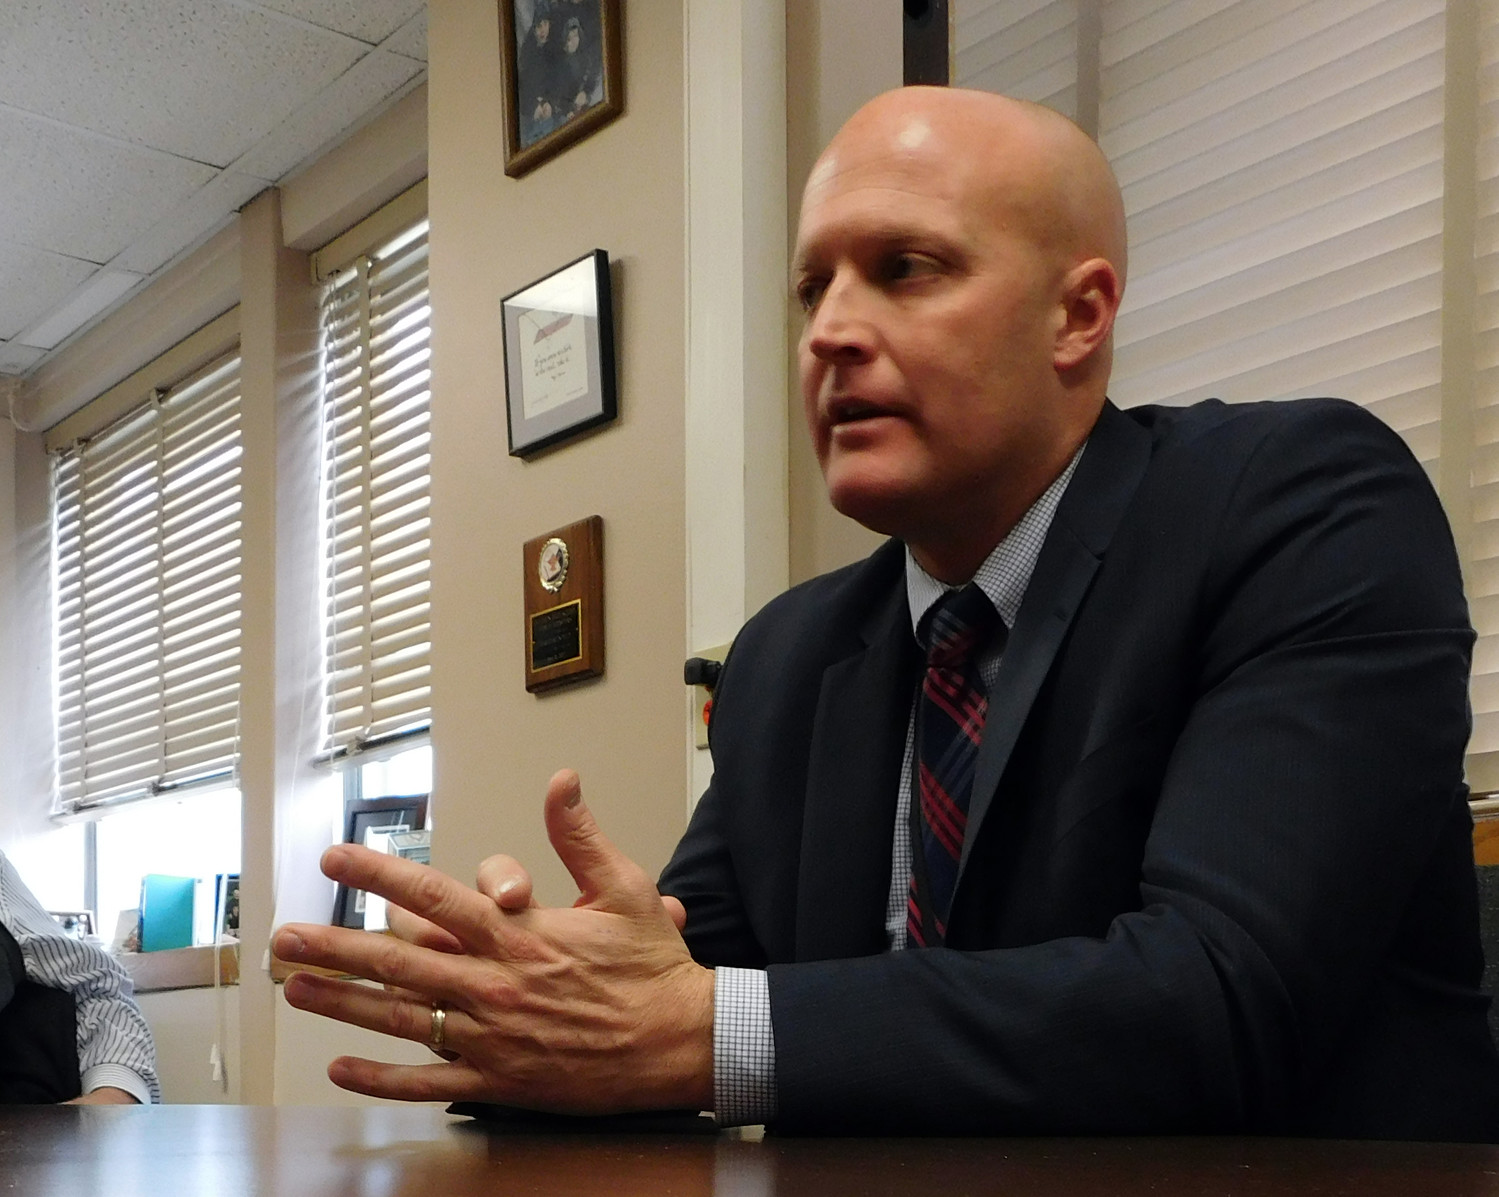 Michael Harrington, assistant superintendent for curriculum and instruction in the Bellmore-Merrick Central High School District, pictured last year, said that his district is ahead of the curve when it comes to providing mental health education to students.